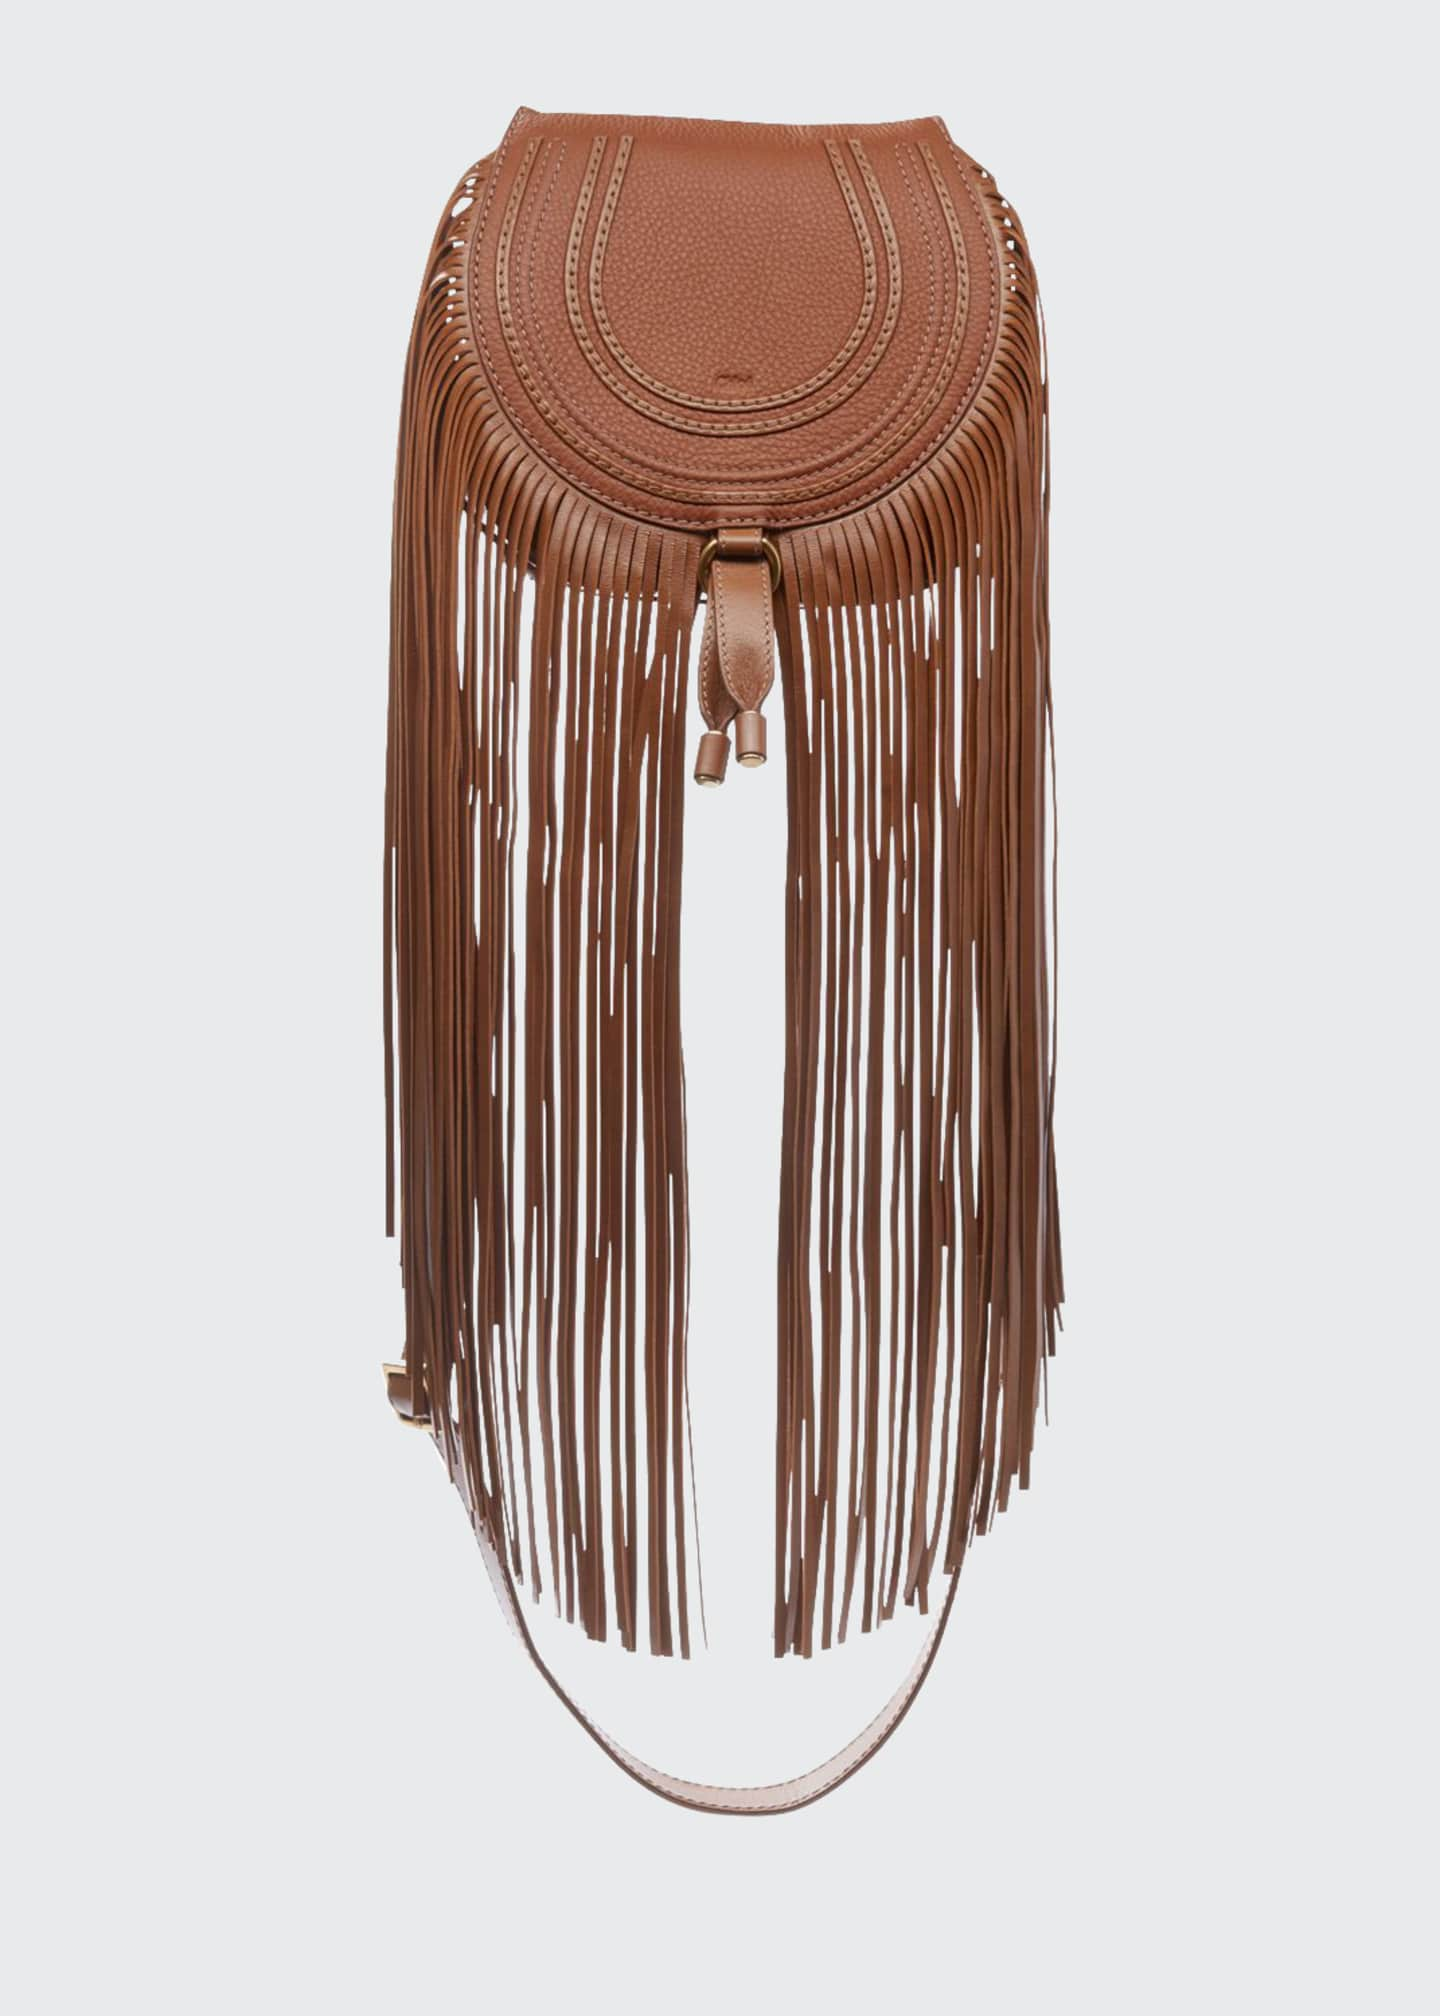 Chloe Marcie Small Crossbody Fringe Bag